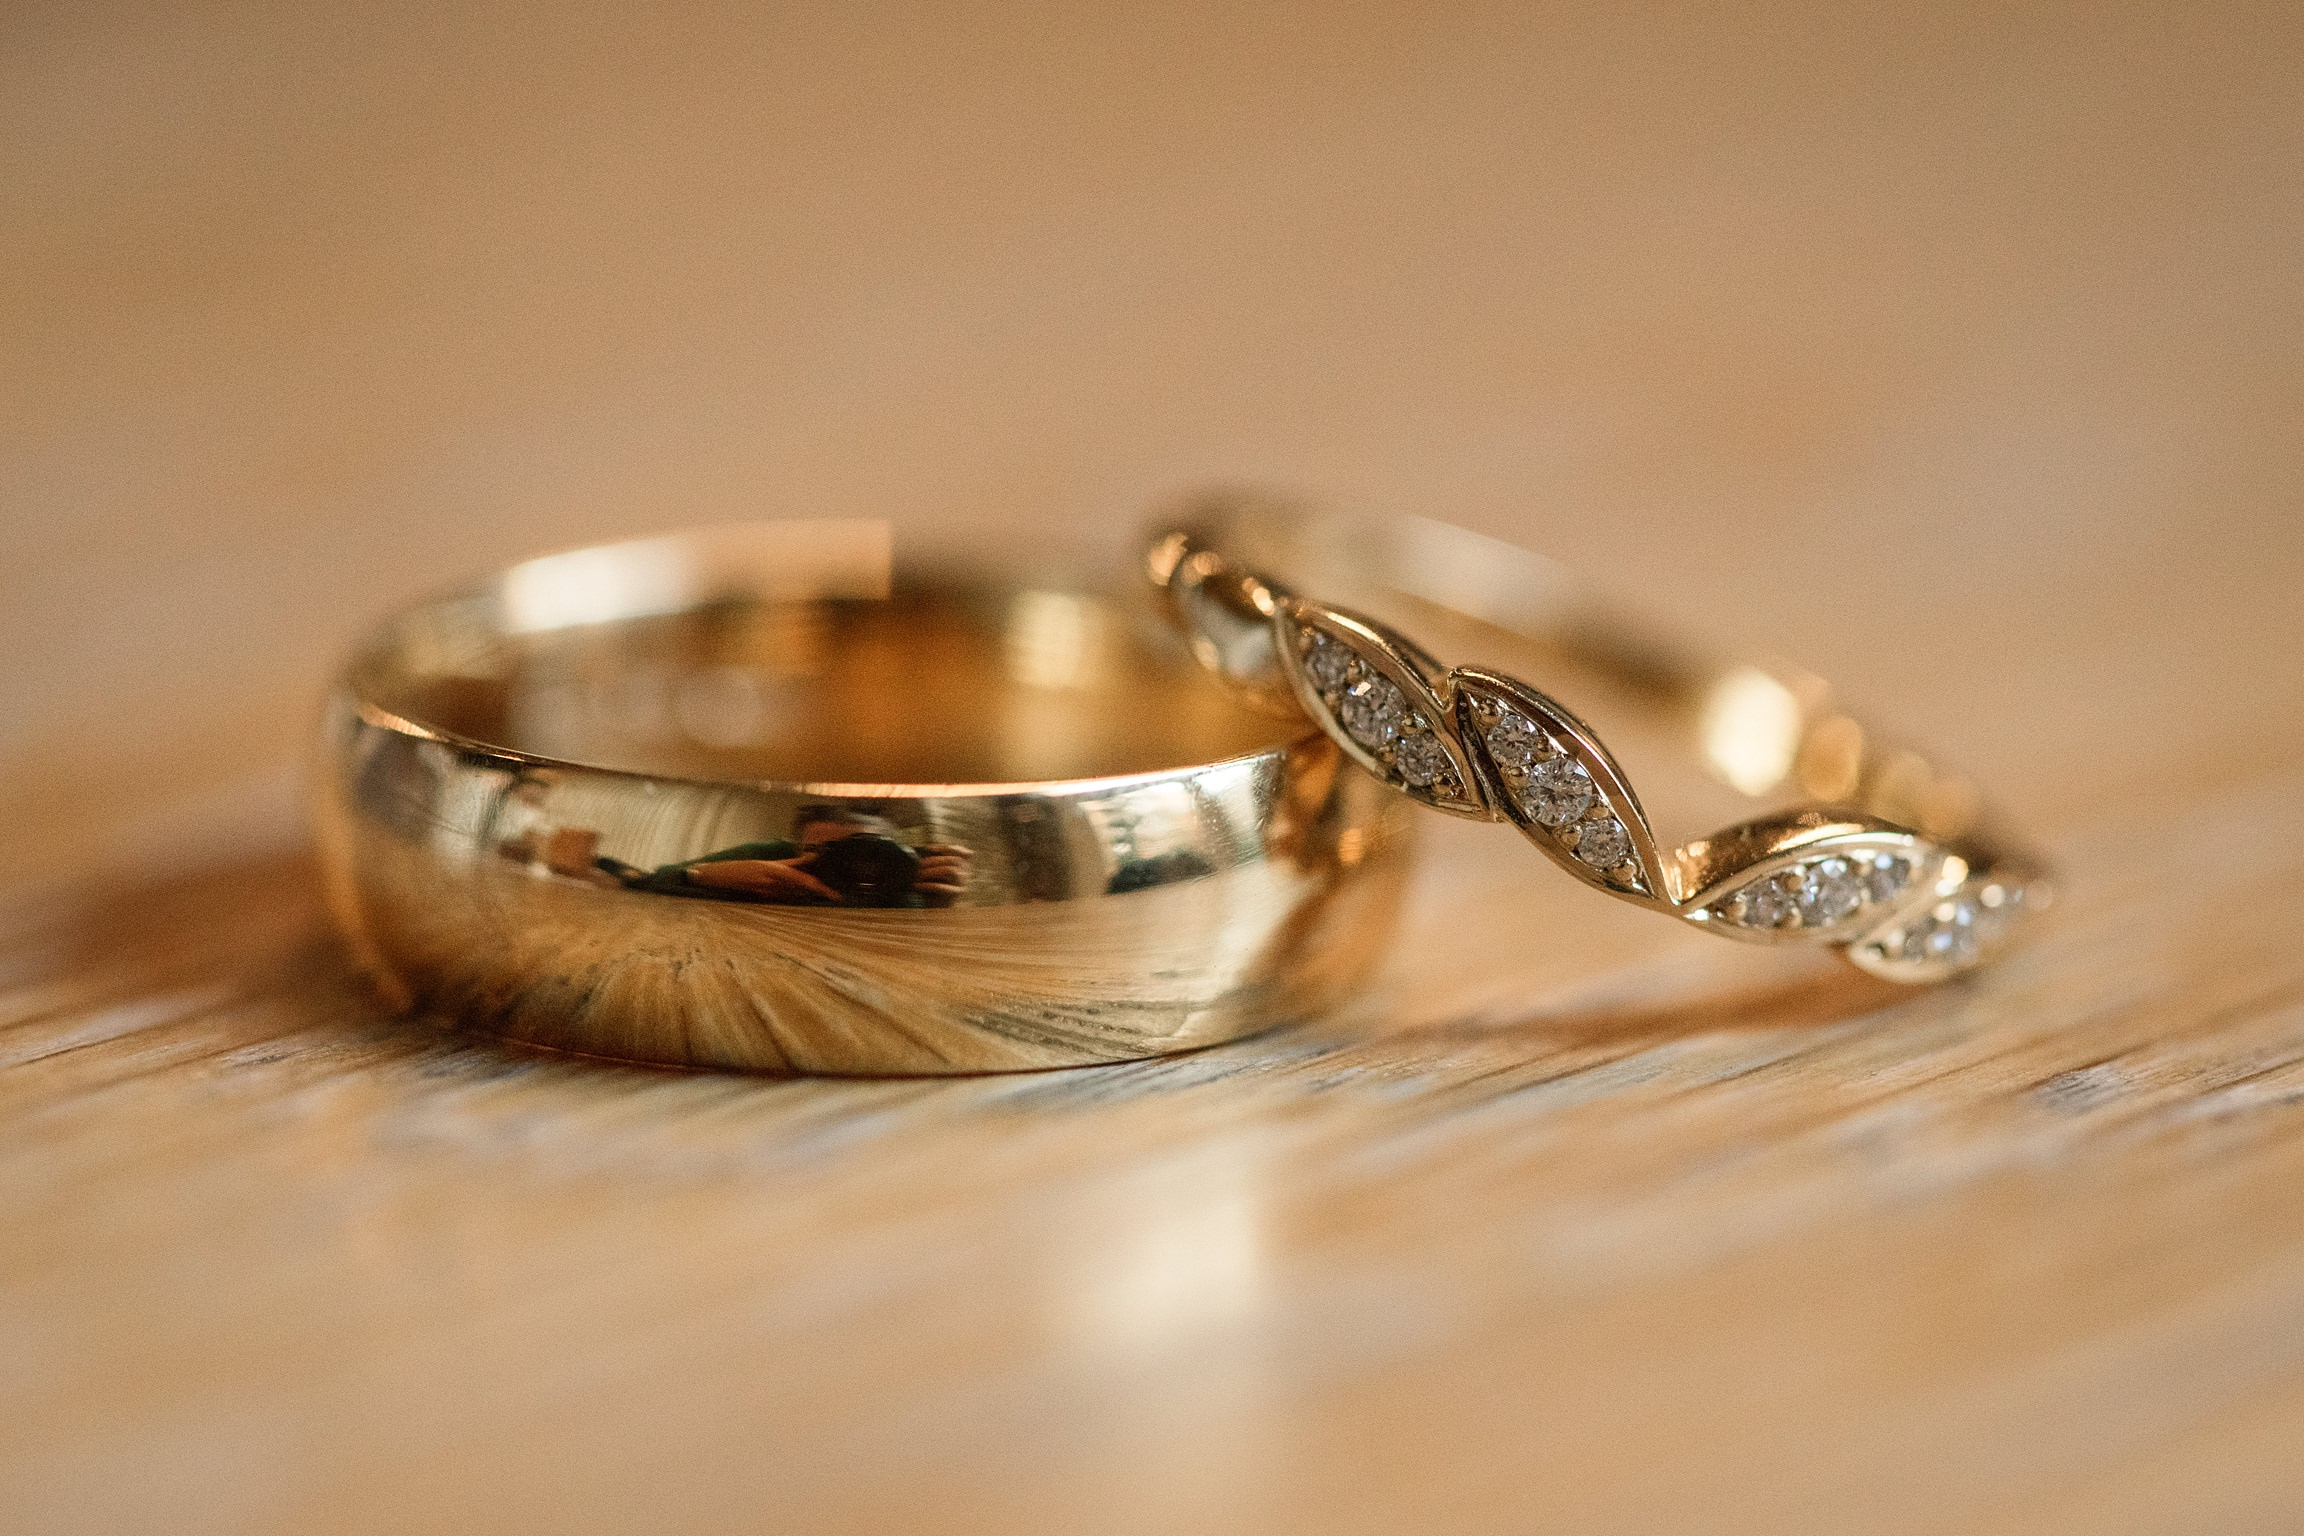 Ethical Jewellery Cred Jewellery Titania ring and Gold 5mm Flat Court taken by Becky Harley Photography